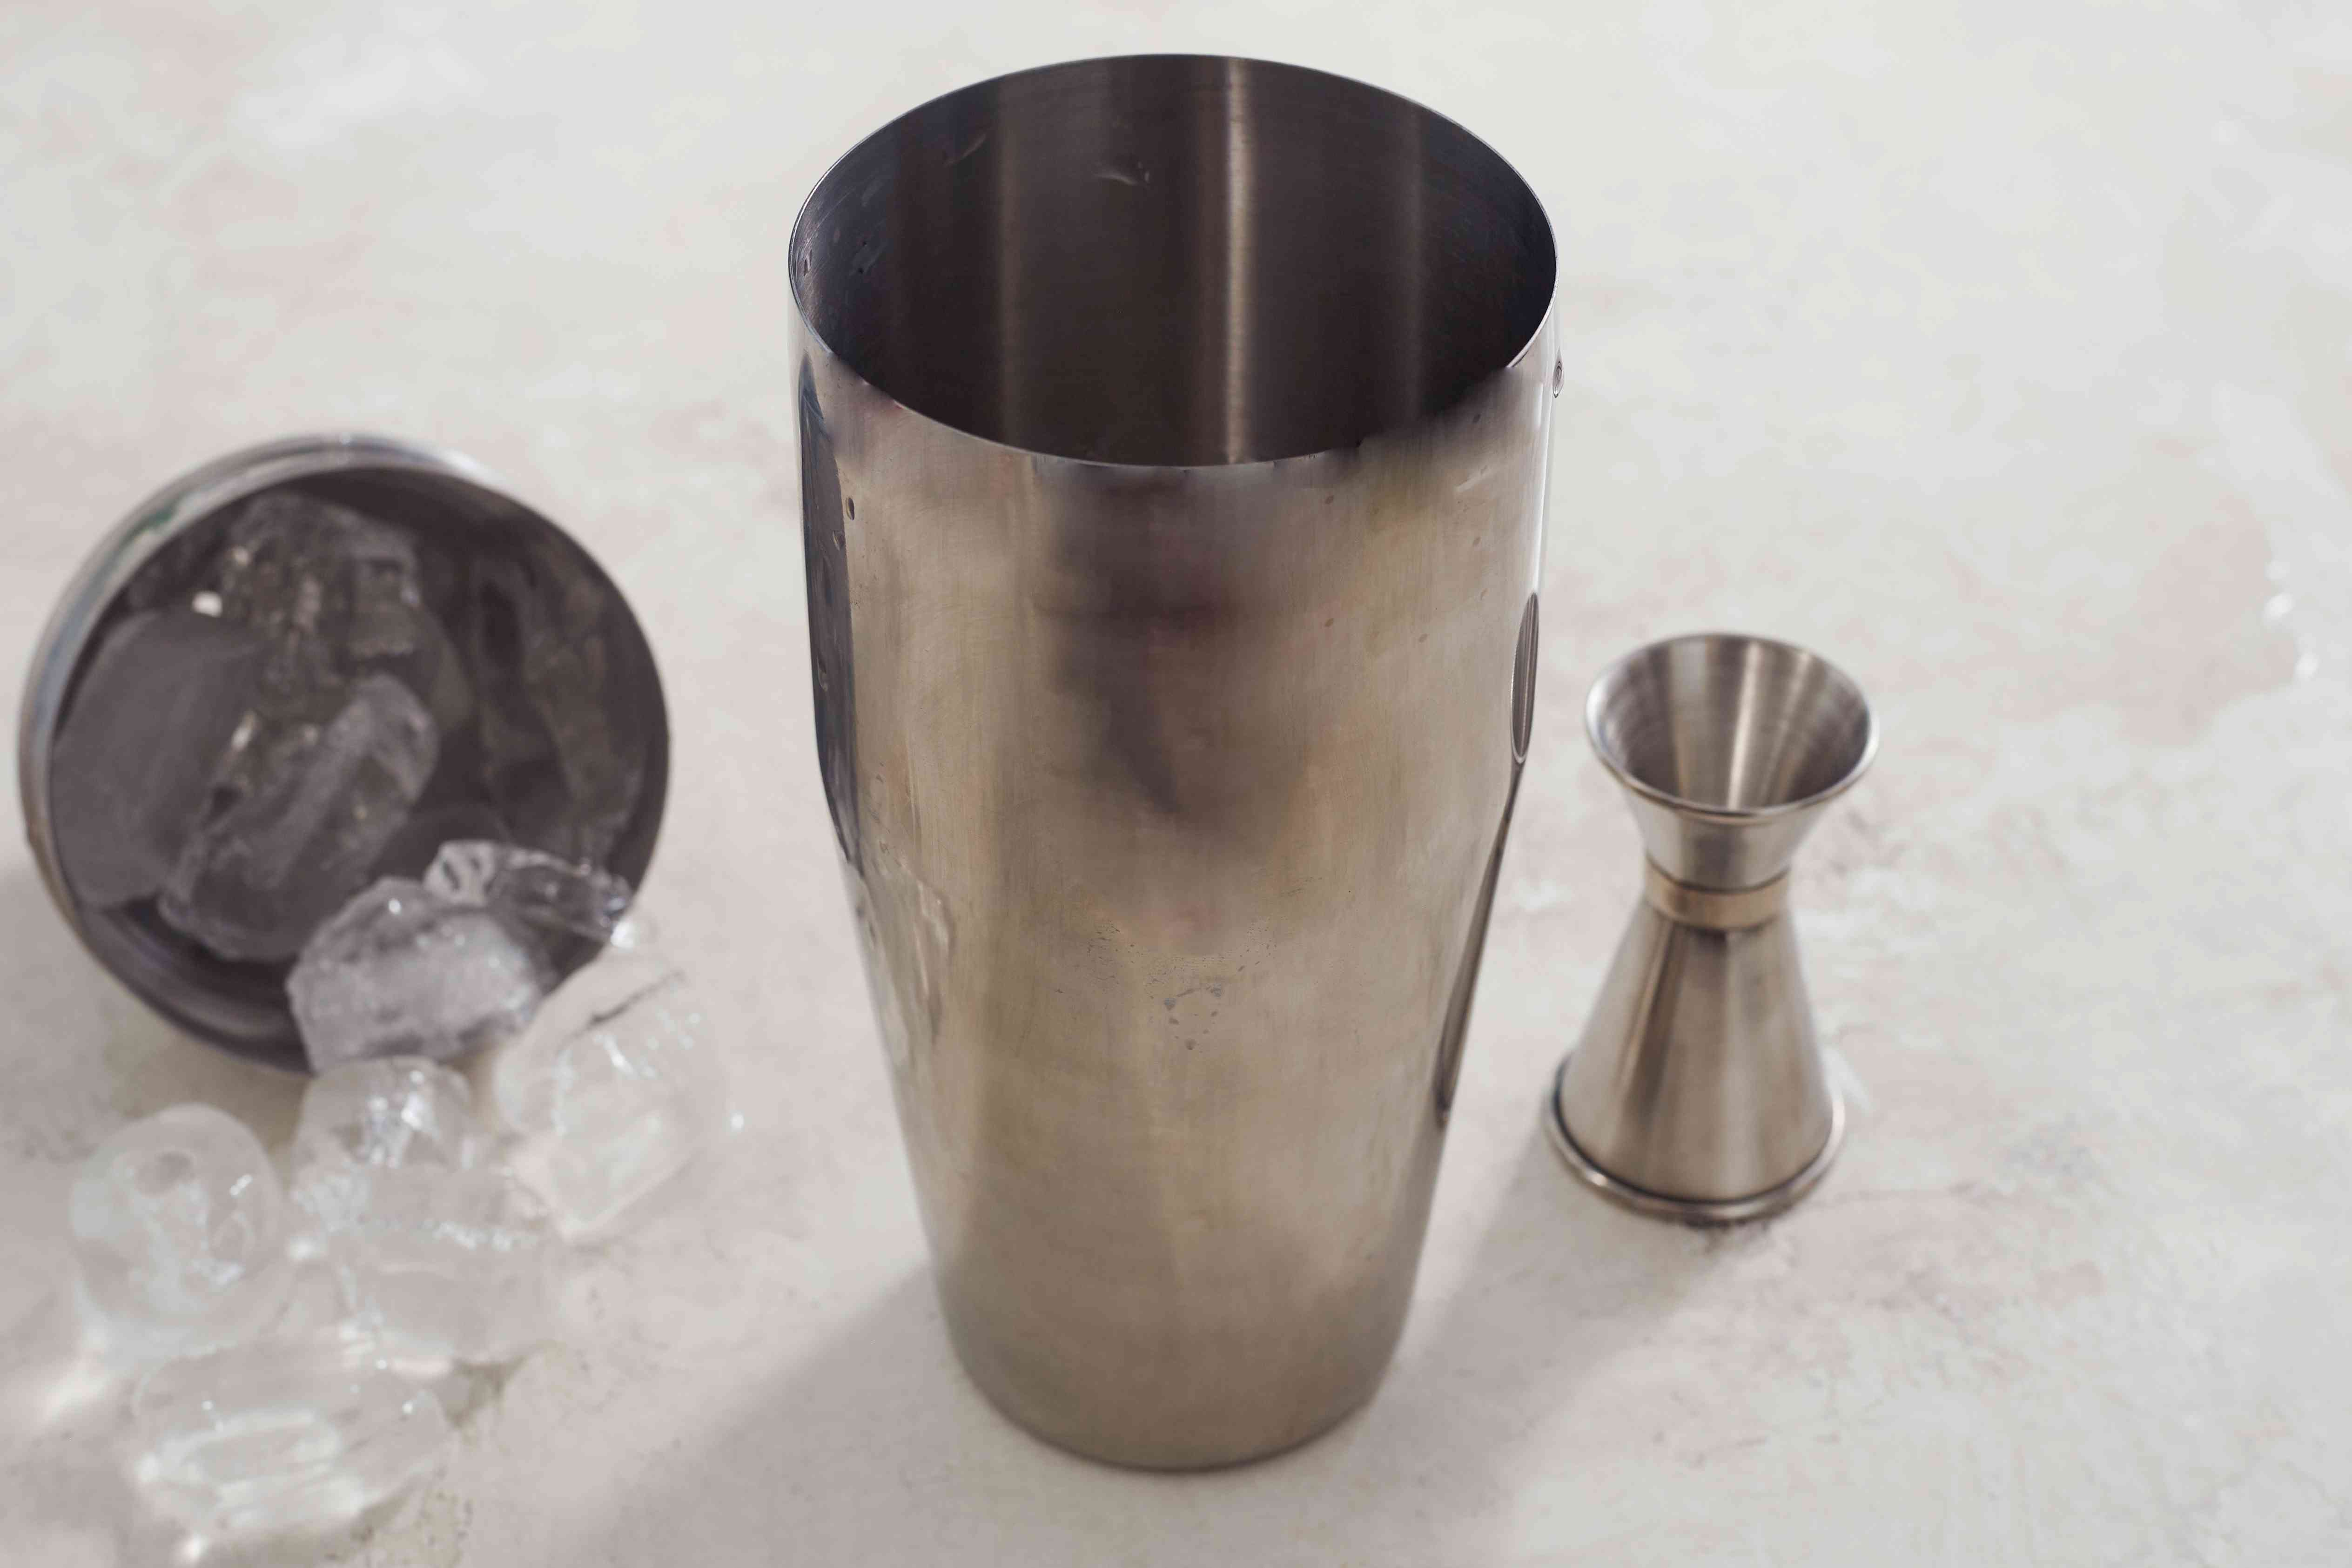 Cocktail shaker with ice